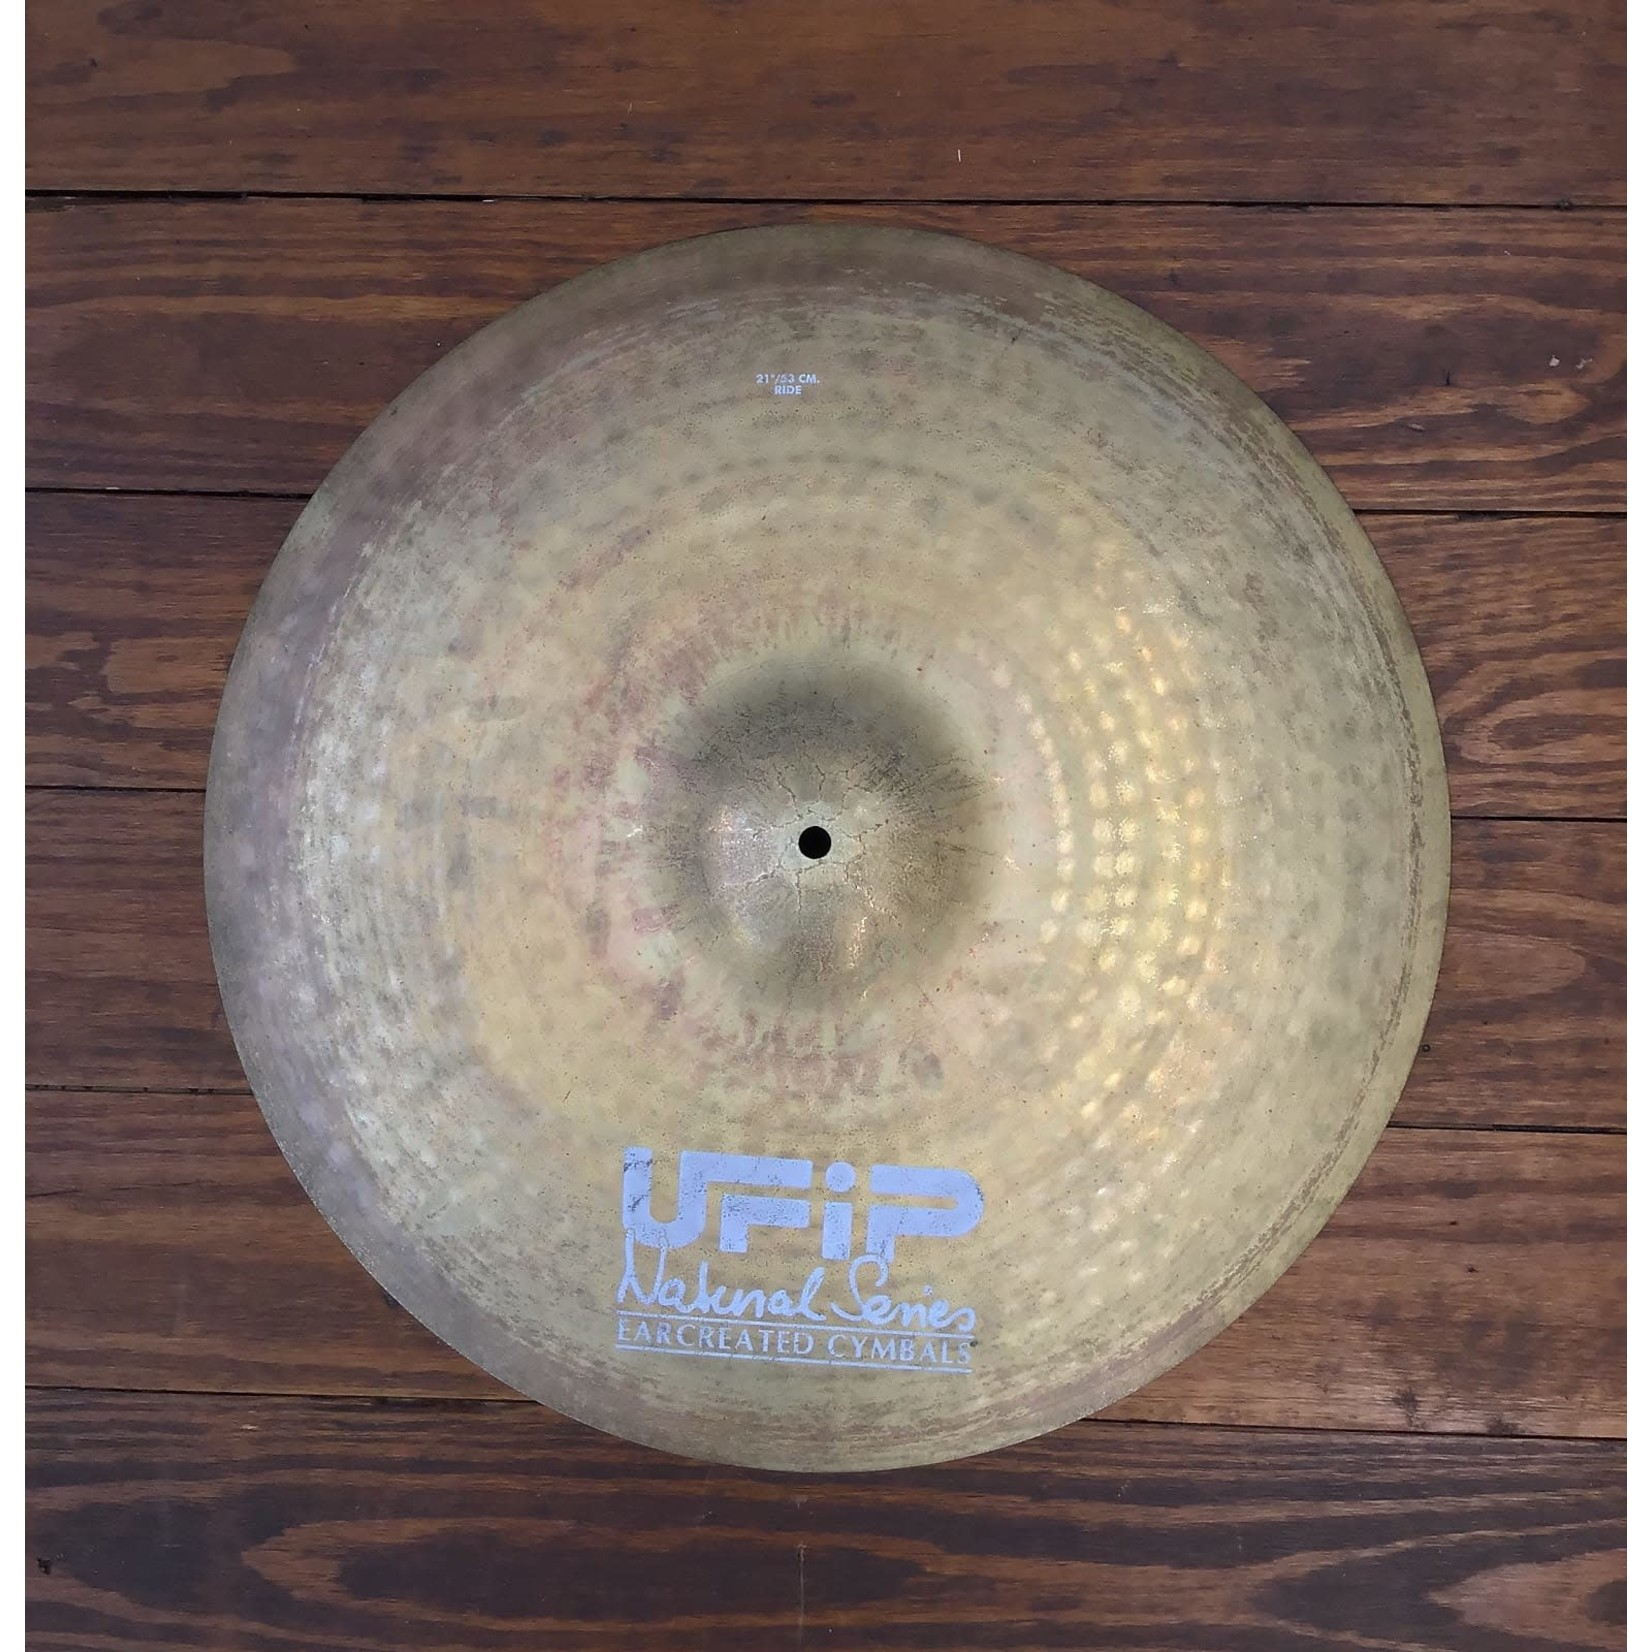 """UFIP USED UFIP Natural Series 21"""" Ride Cymbal"""